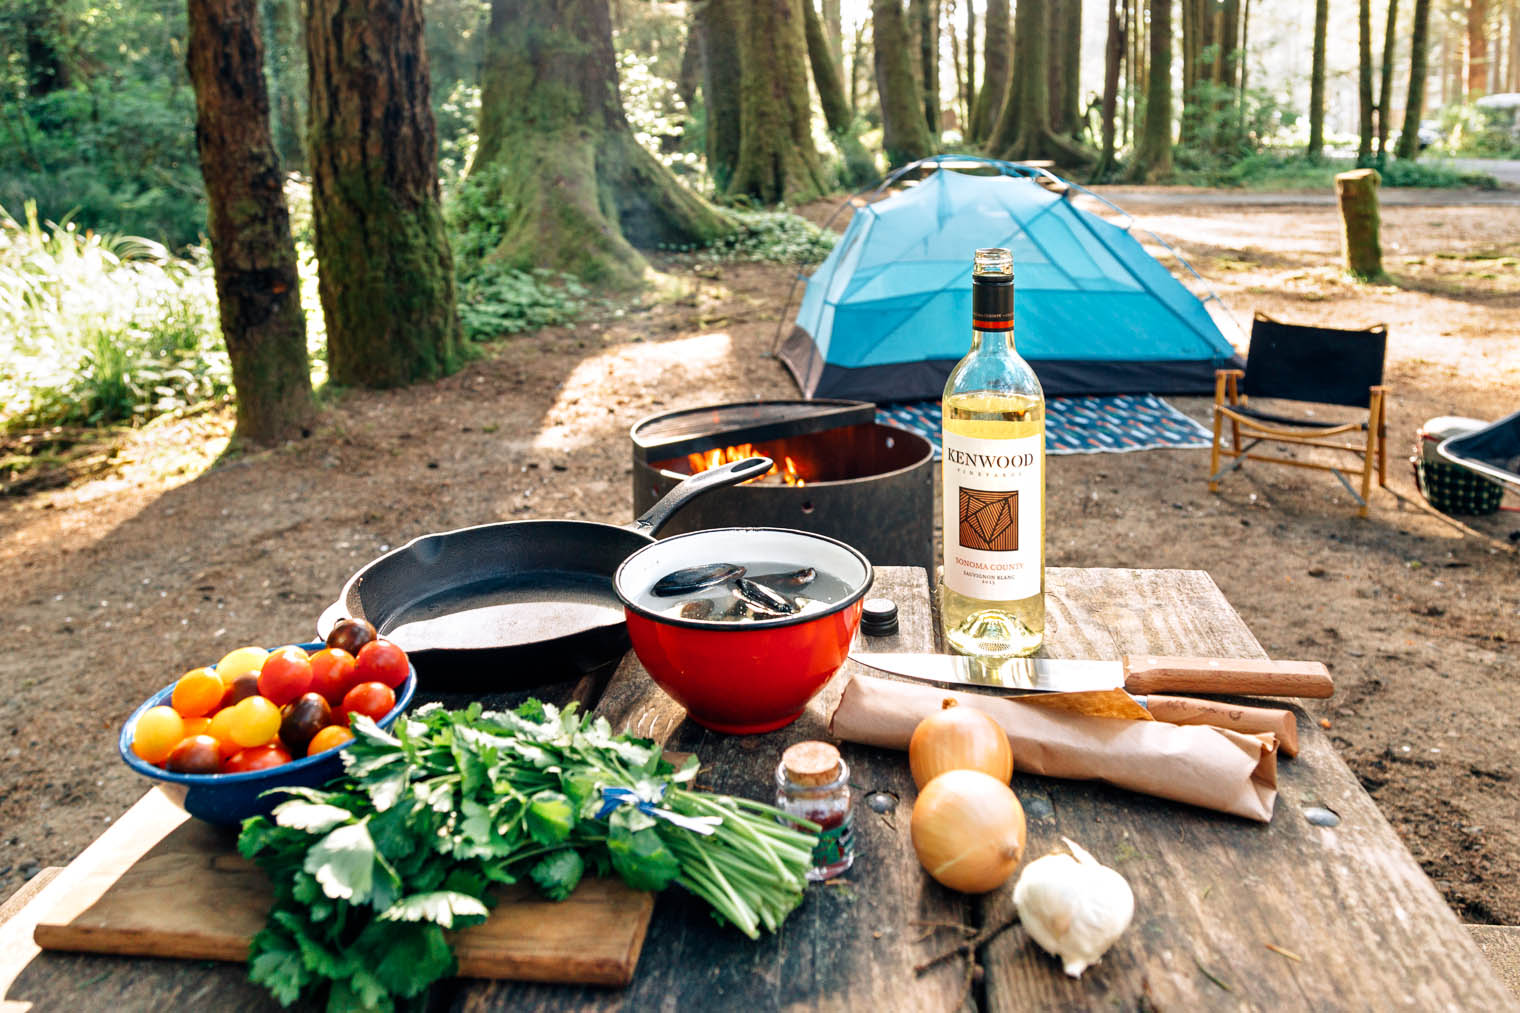 All of the ingredients you need to make seafood paella while camping!